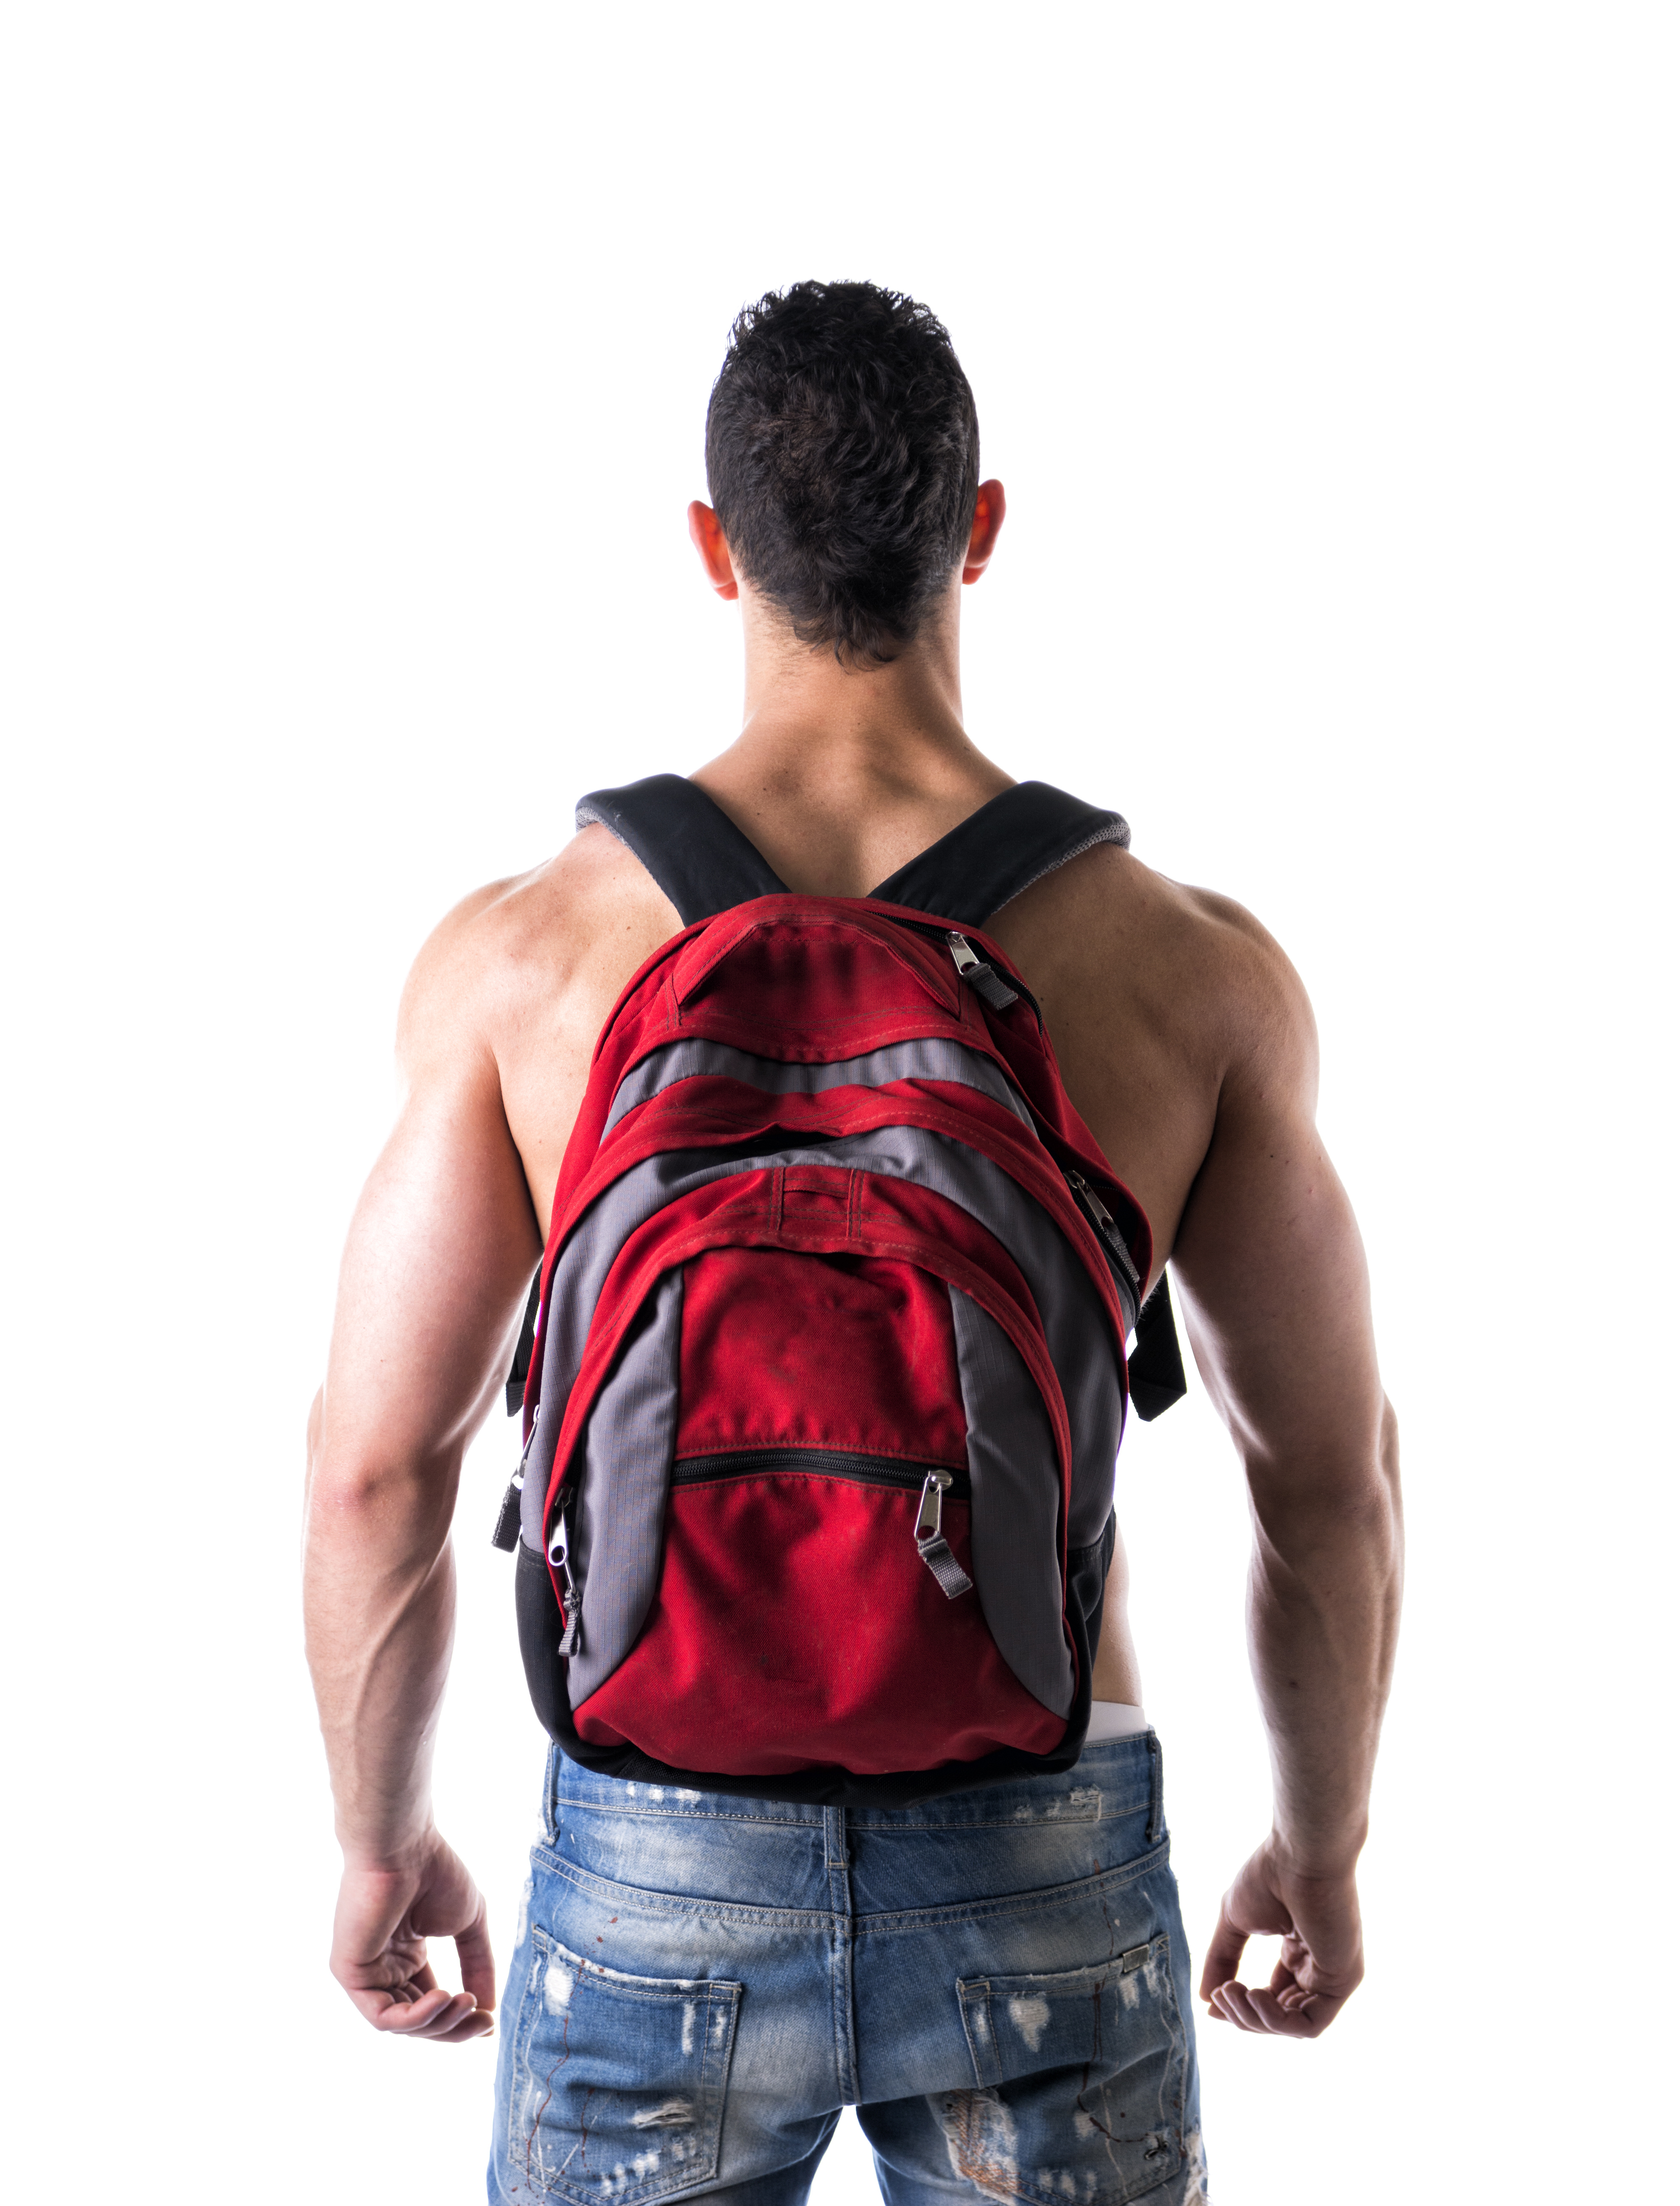 7 tips for fitting a back pack